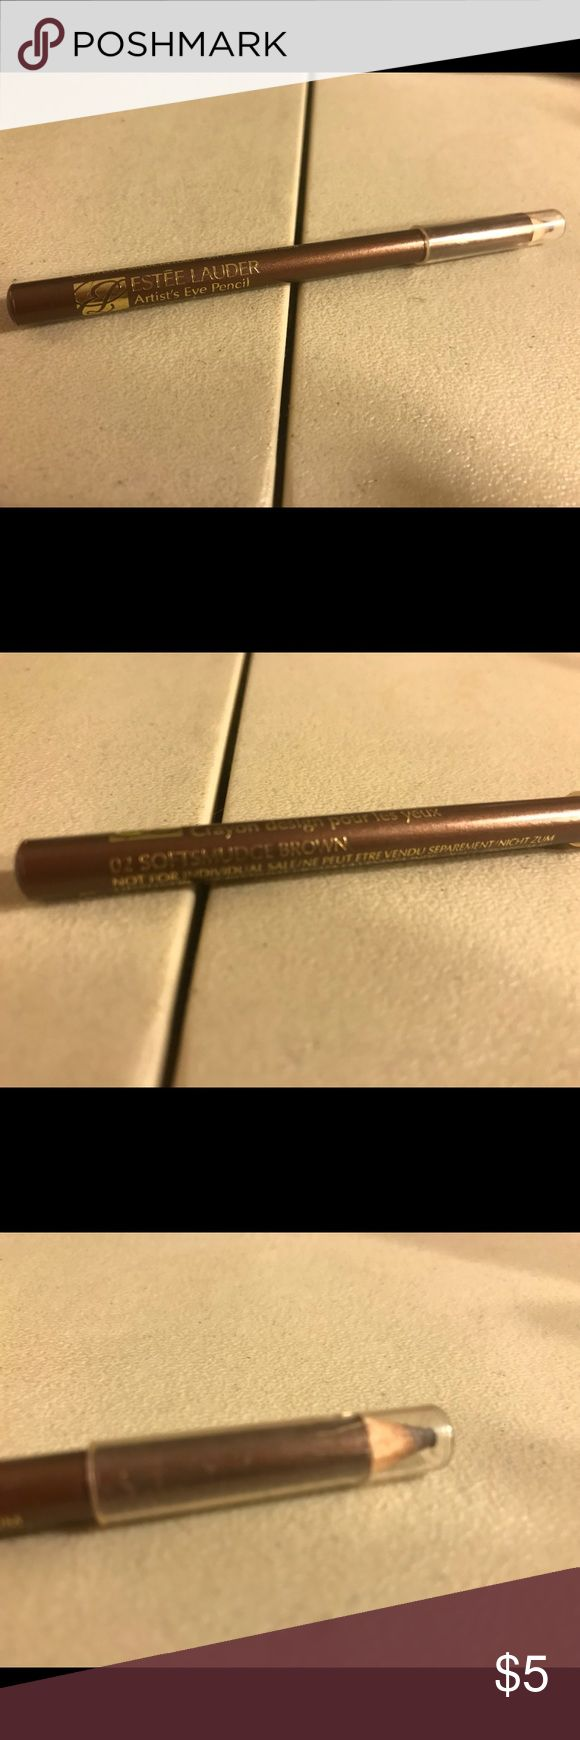 Estée Lauder artist's eye pencil Estée Lauder artist's eye pencil in color 02 softsmudge brown, used. Thanks for checking out Luxury1cosmetics!! Offers are welcomed, bundles are discounted!! Estee Lauder Makeup